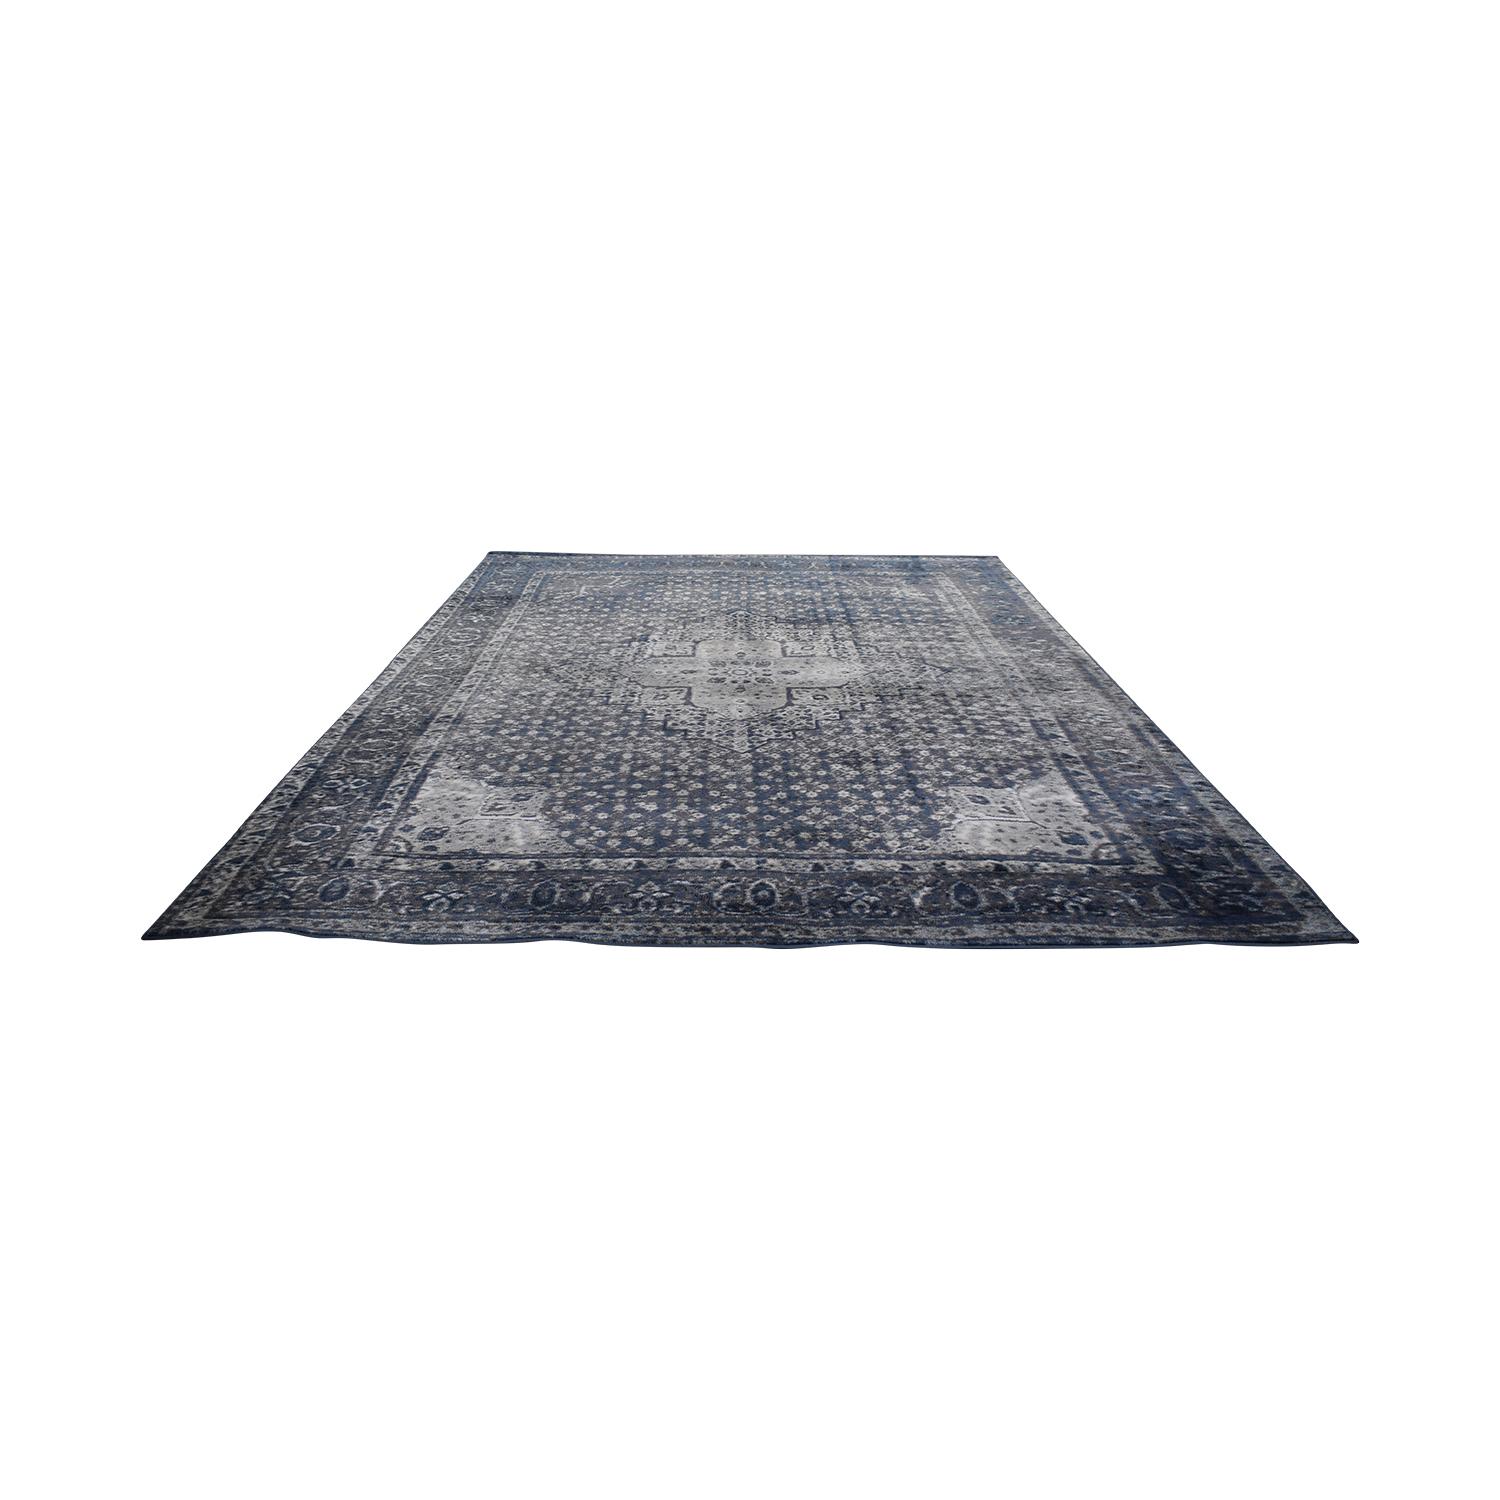 Nuloom Traces Large Blue and Grey Area Rug sale